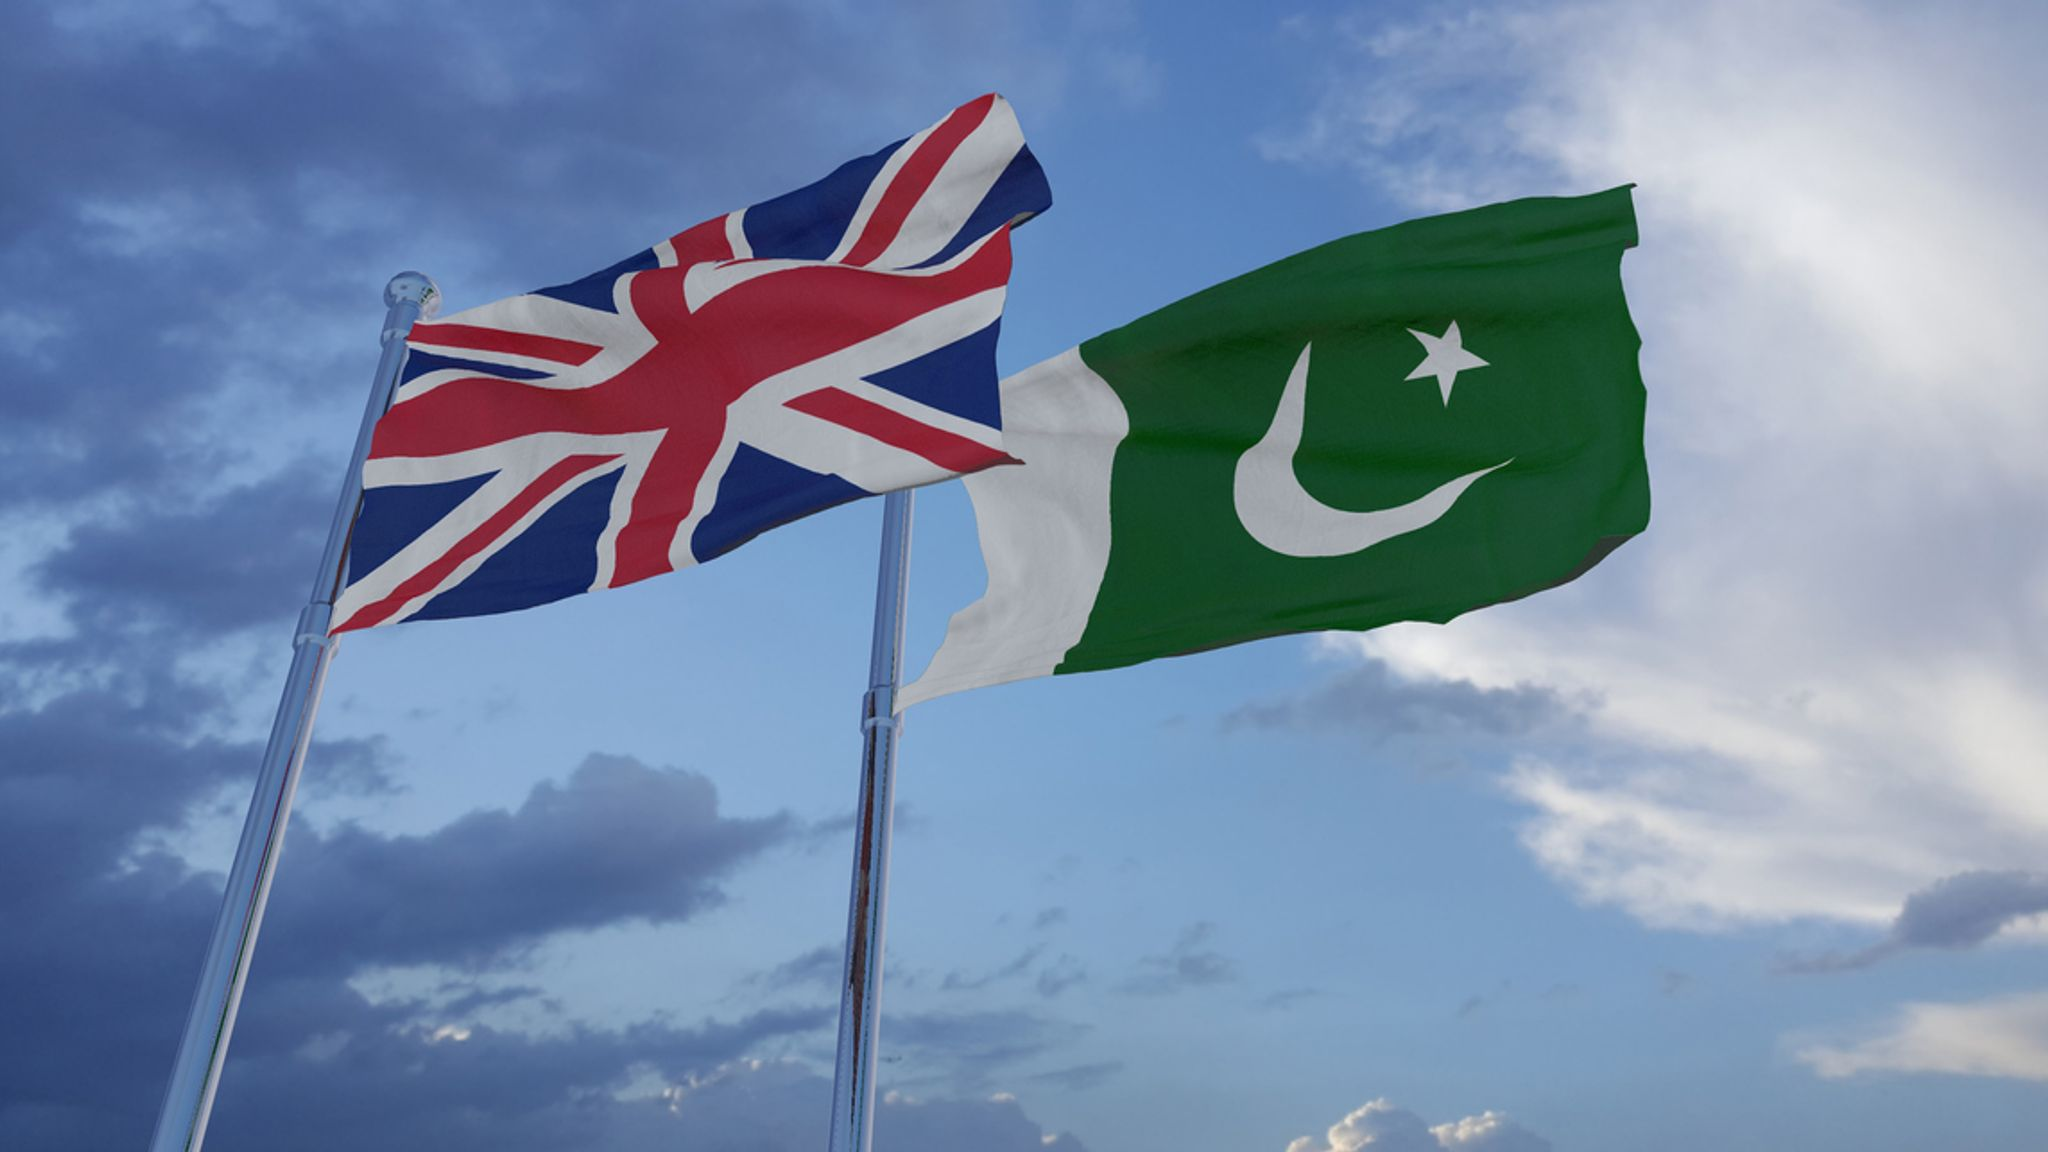 Two British sisters die in Pakistan 'after being found unconscious in bathroom'